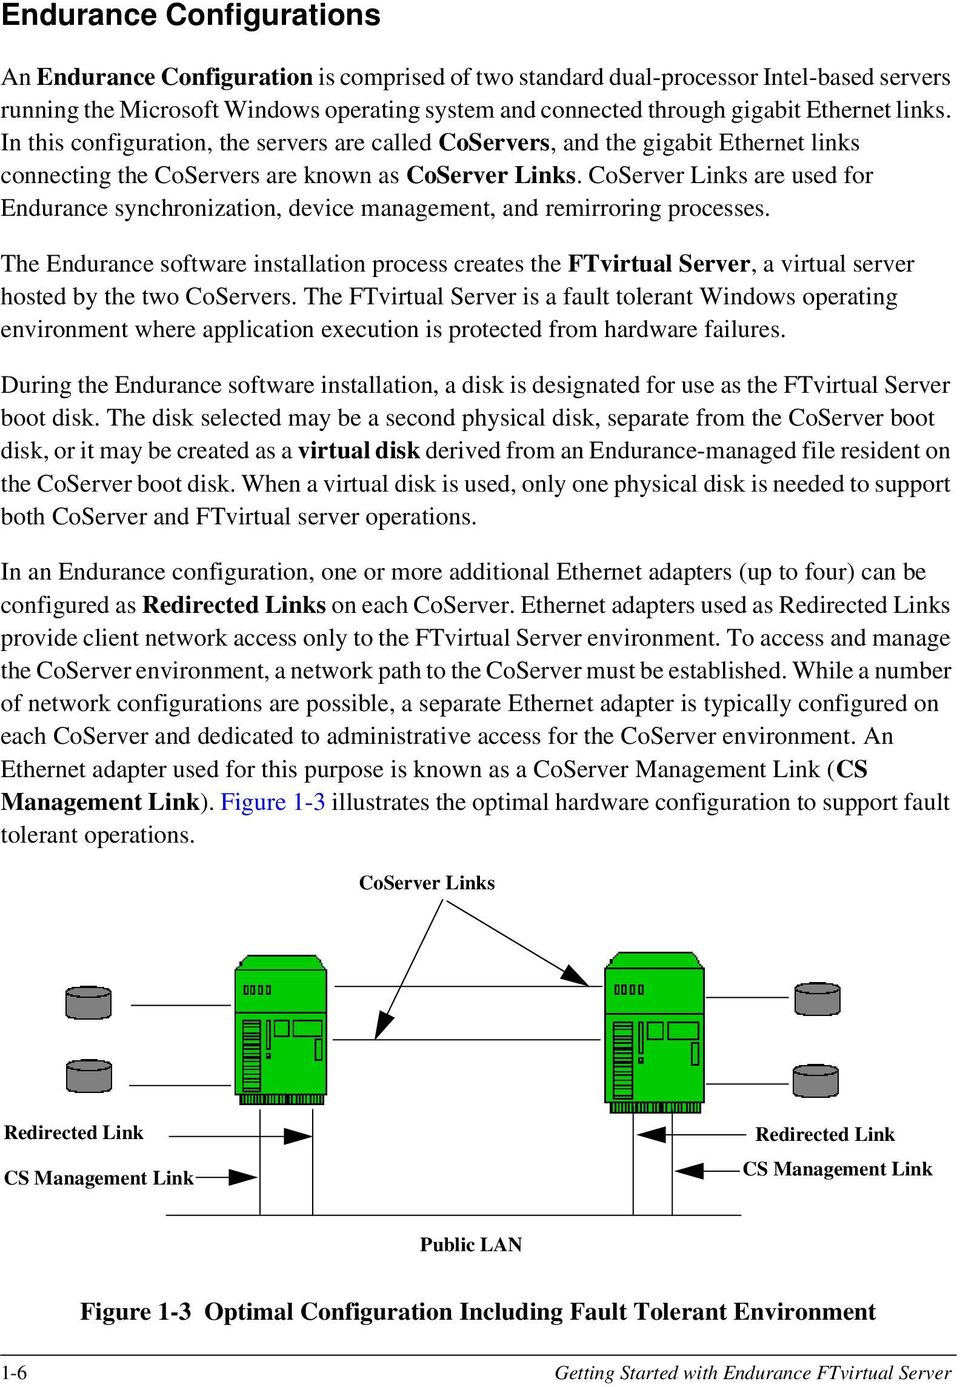 CoServer Links are used for Endurance synchronization, device management, and remirroring processes.